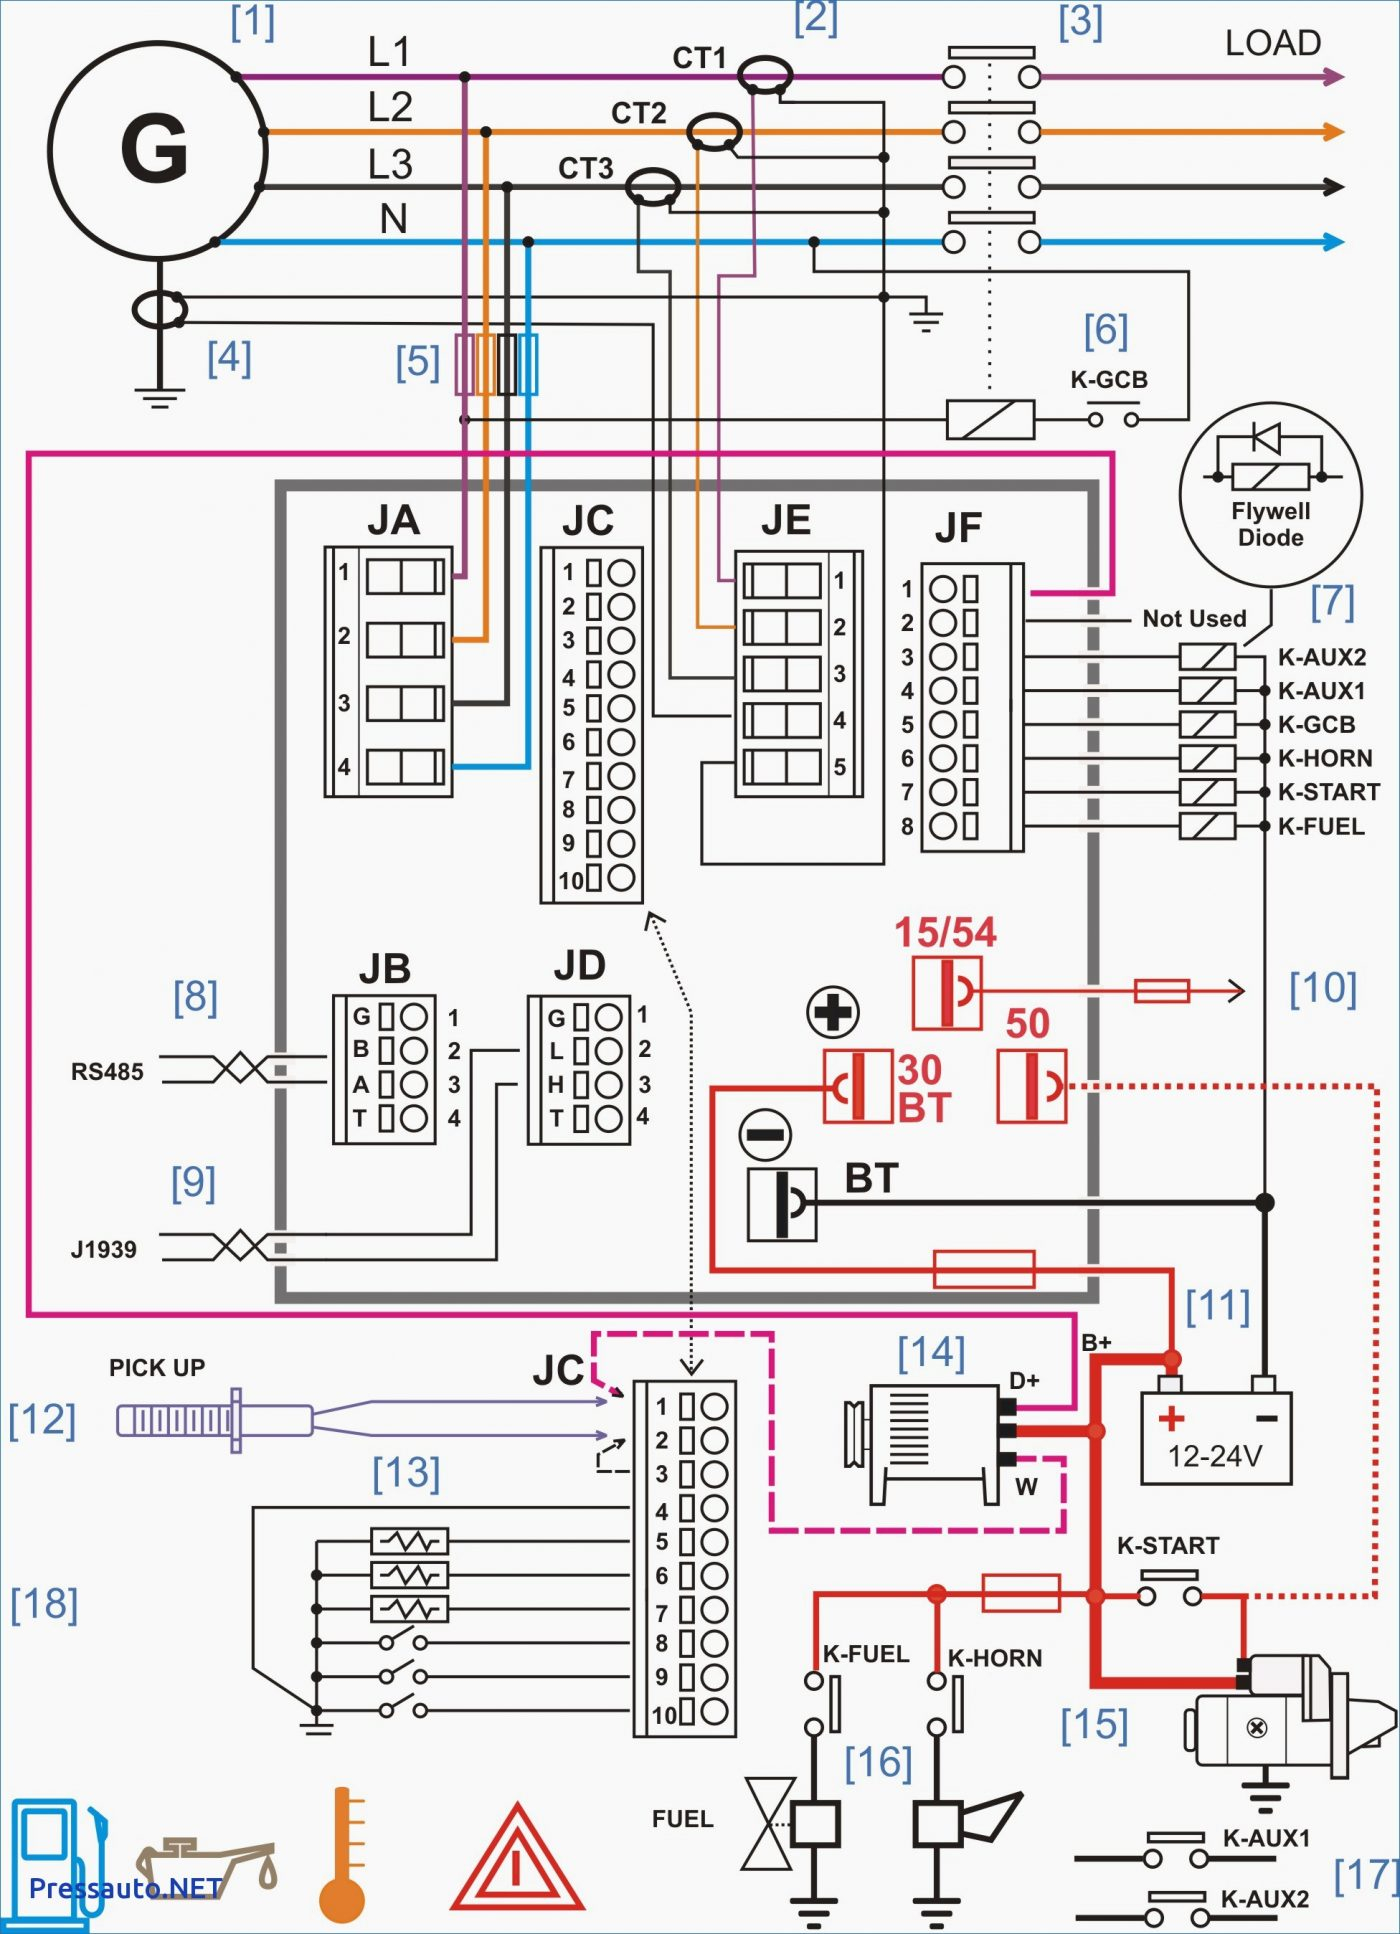 sta rite pump wiring diagram Collection-Sta Rite Pump Wiring Diagram Best Sta Rite Pump Wiring Diagram Pool Ht T Submersible 12-l